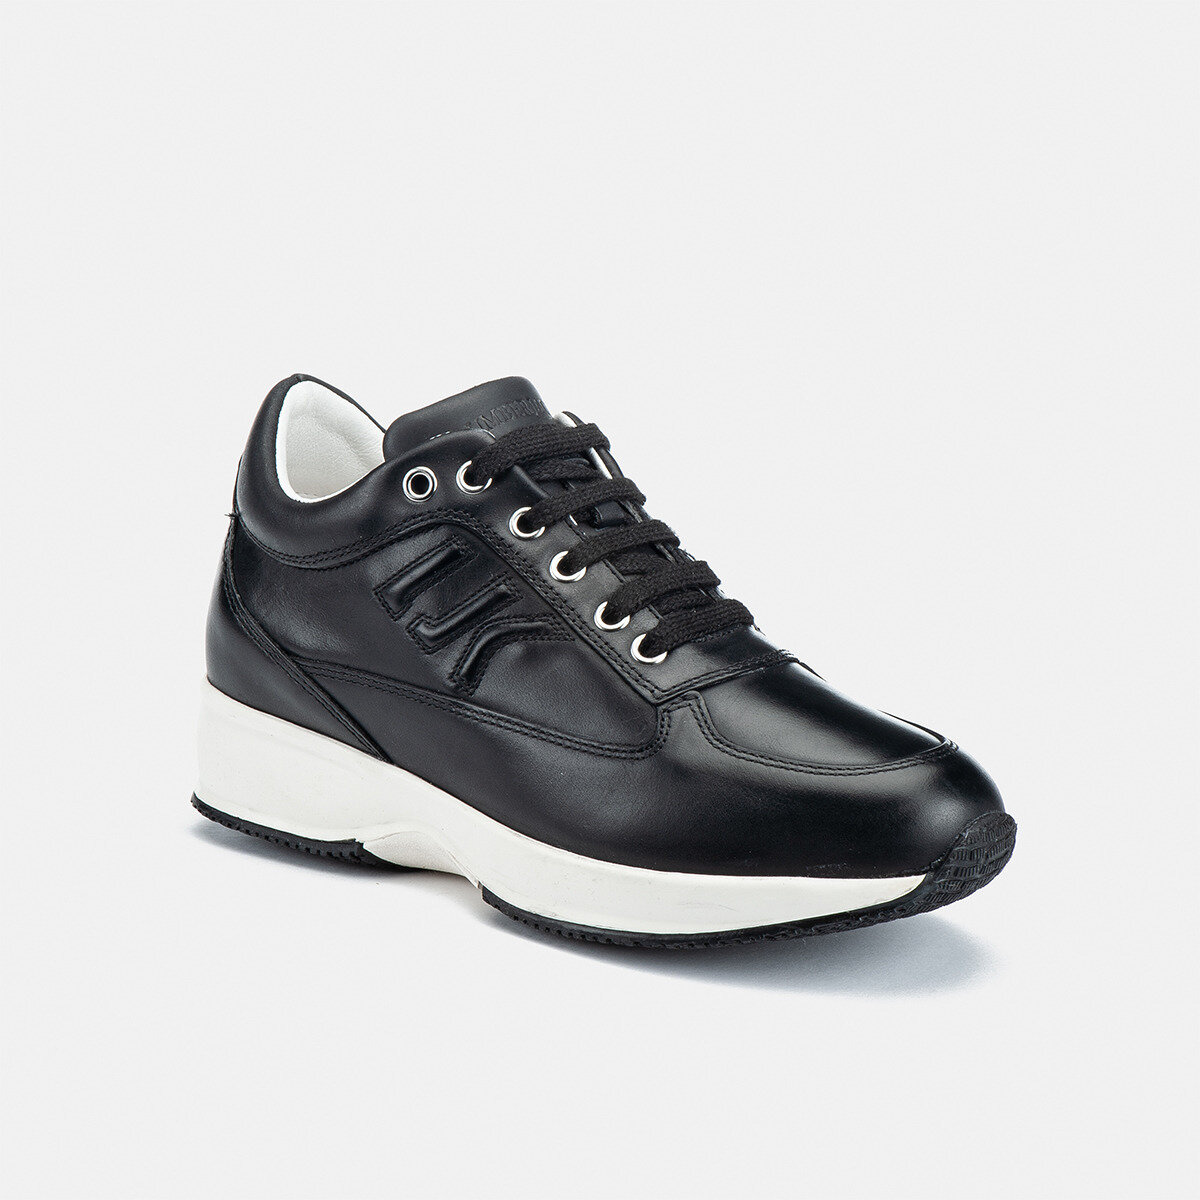 RAUL BLACK Woman Sneakers